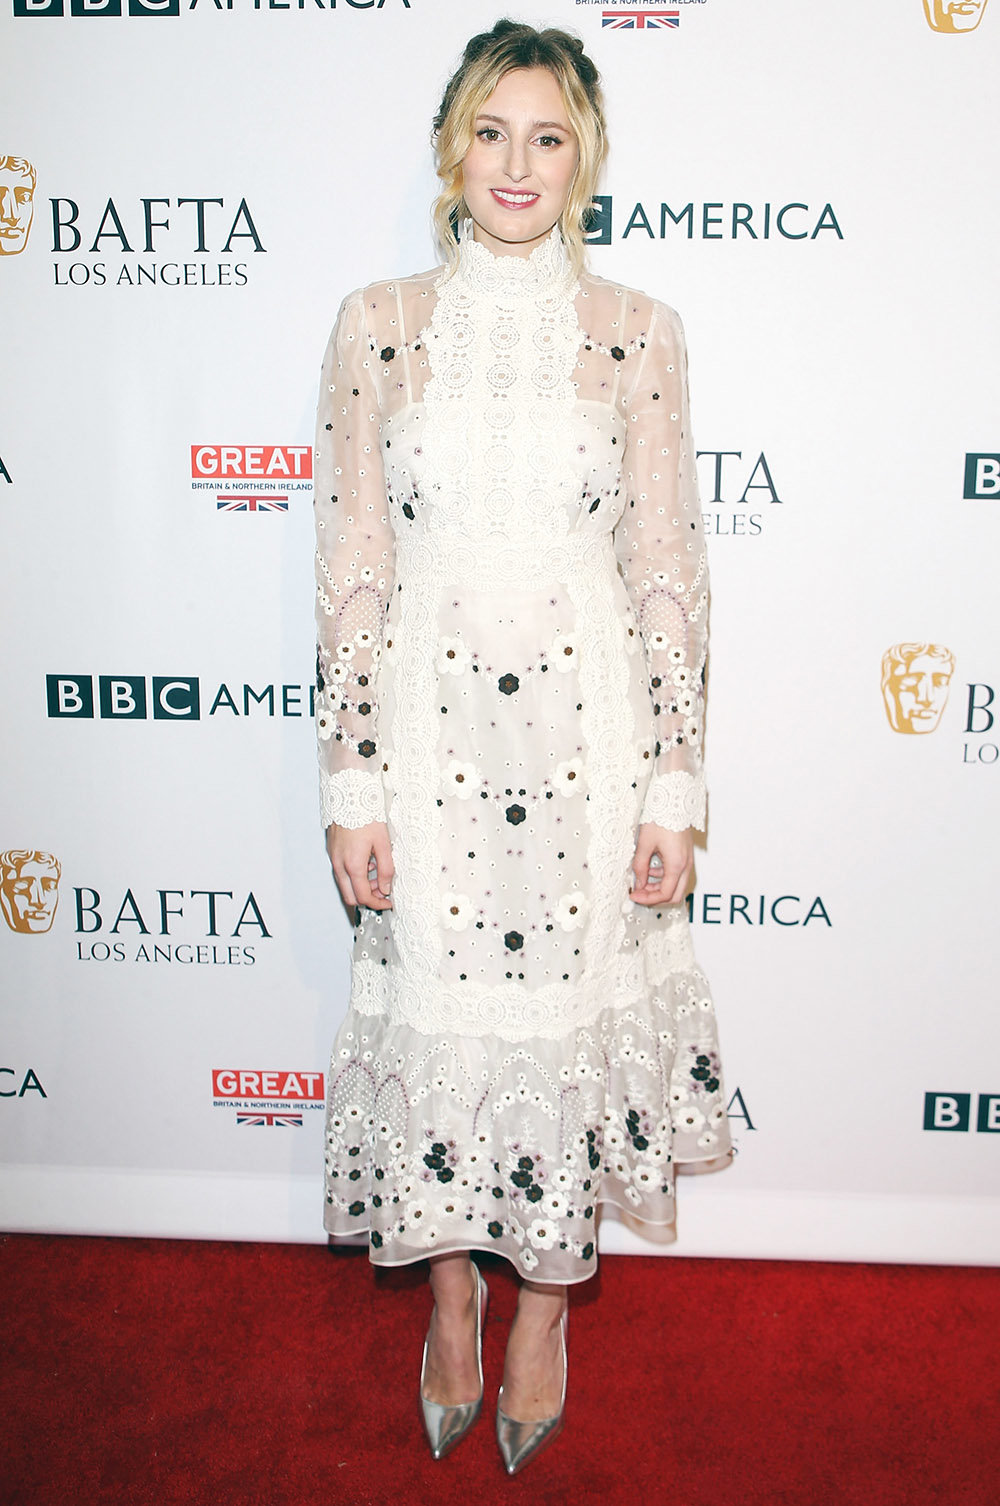 WEST HOLLYWOOD, CA - SEPTEMBER 17:  Laura Carmichael arrives at the BBC America BAFTA Los Angeles TV Tea Party 2016 held at The London Hotel on September 17, 2016 in West Hollywood, California.  (Photo by Michael Tran/FilmMagic)